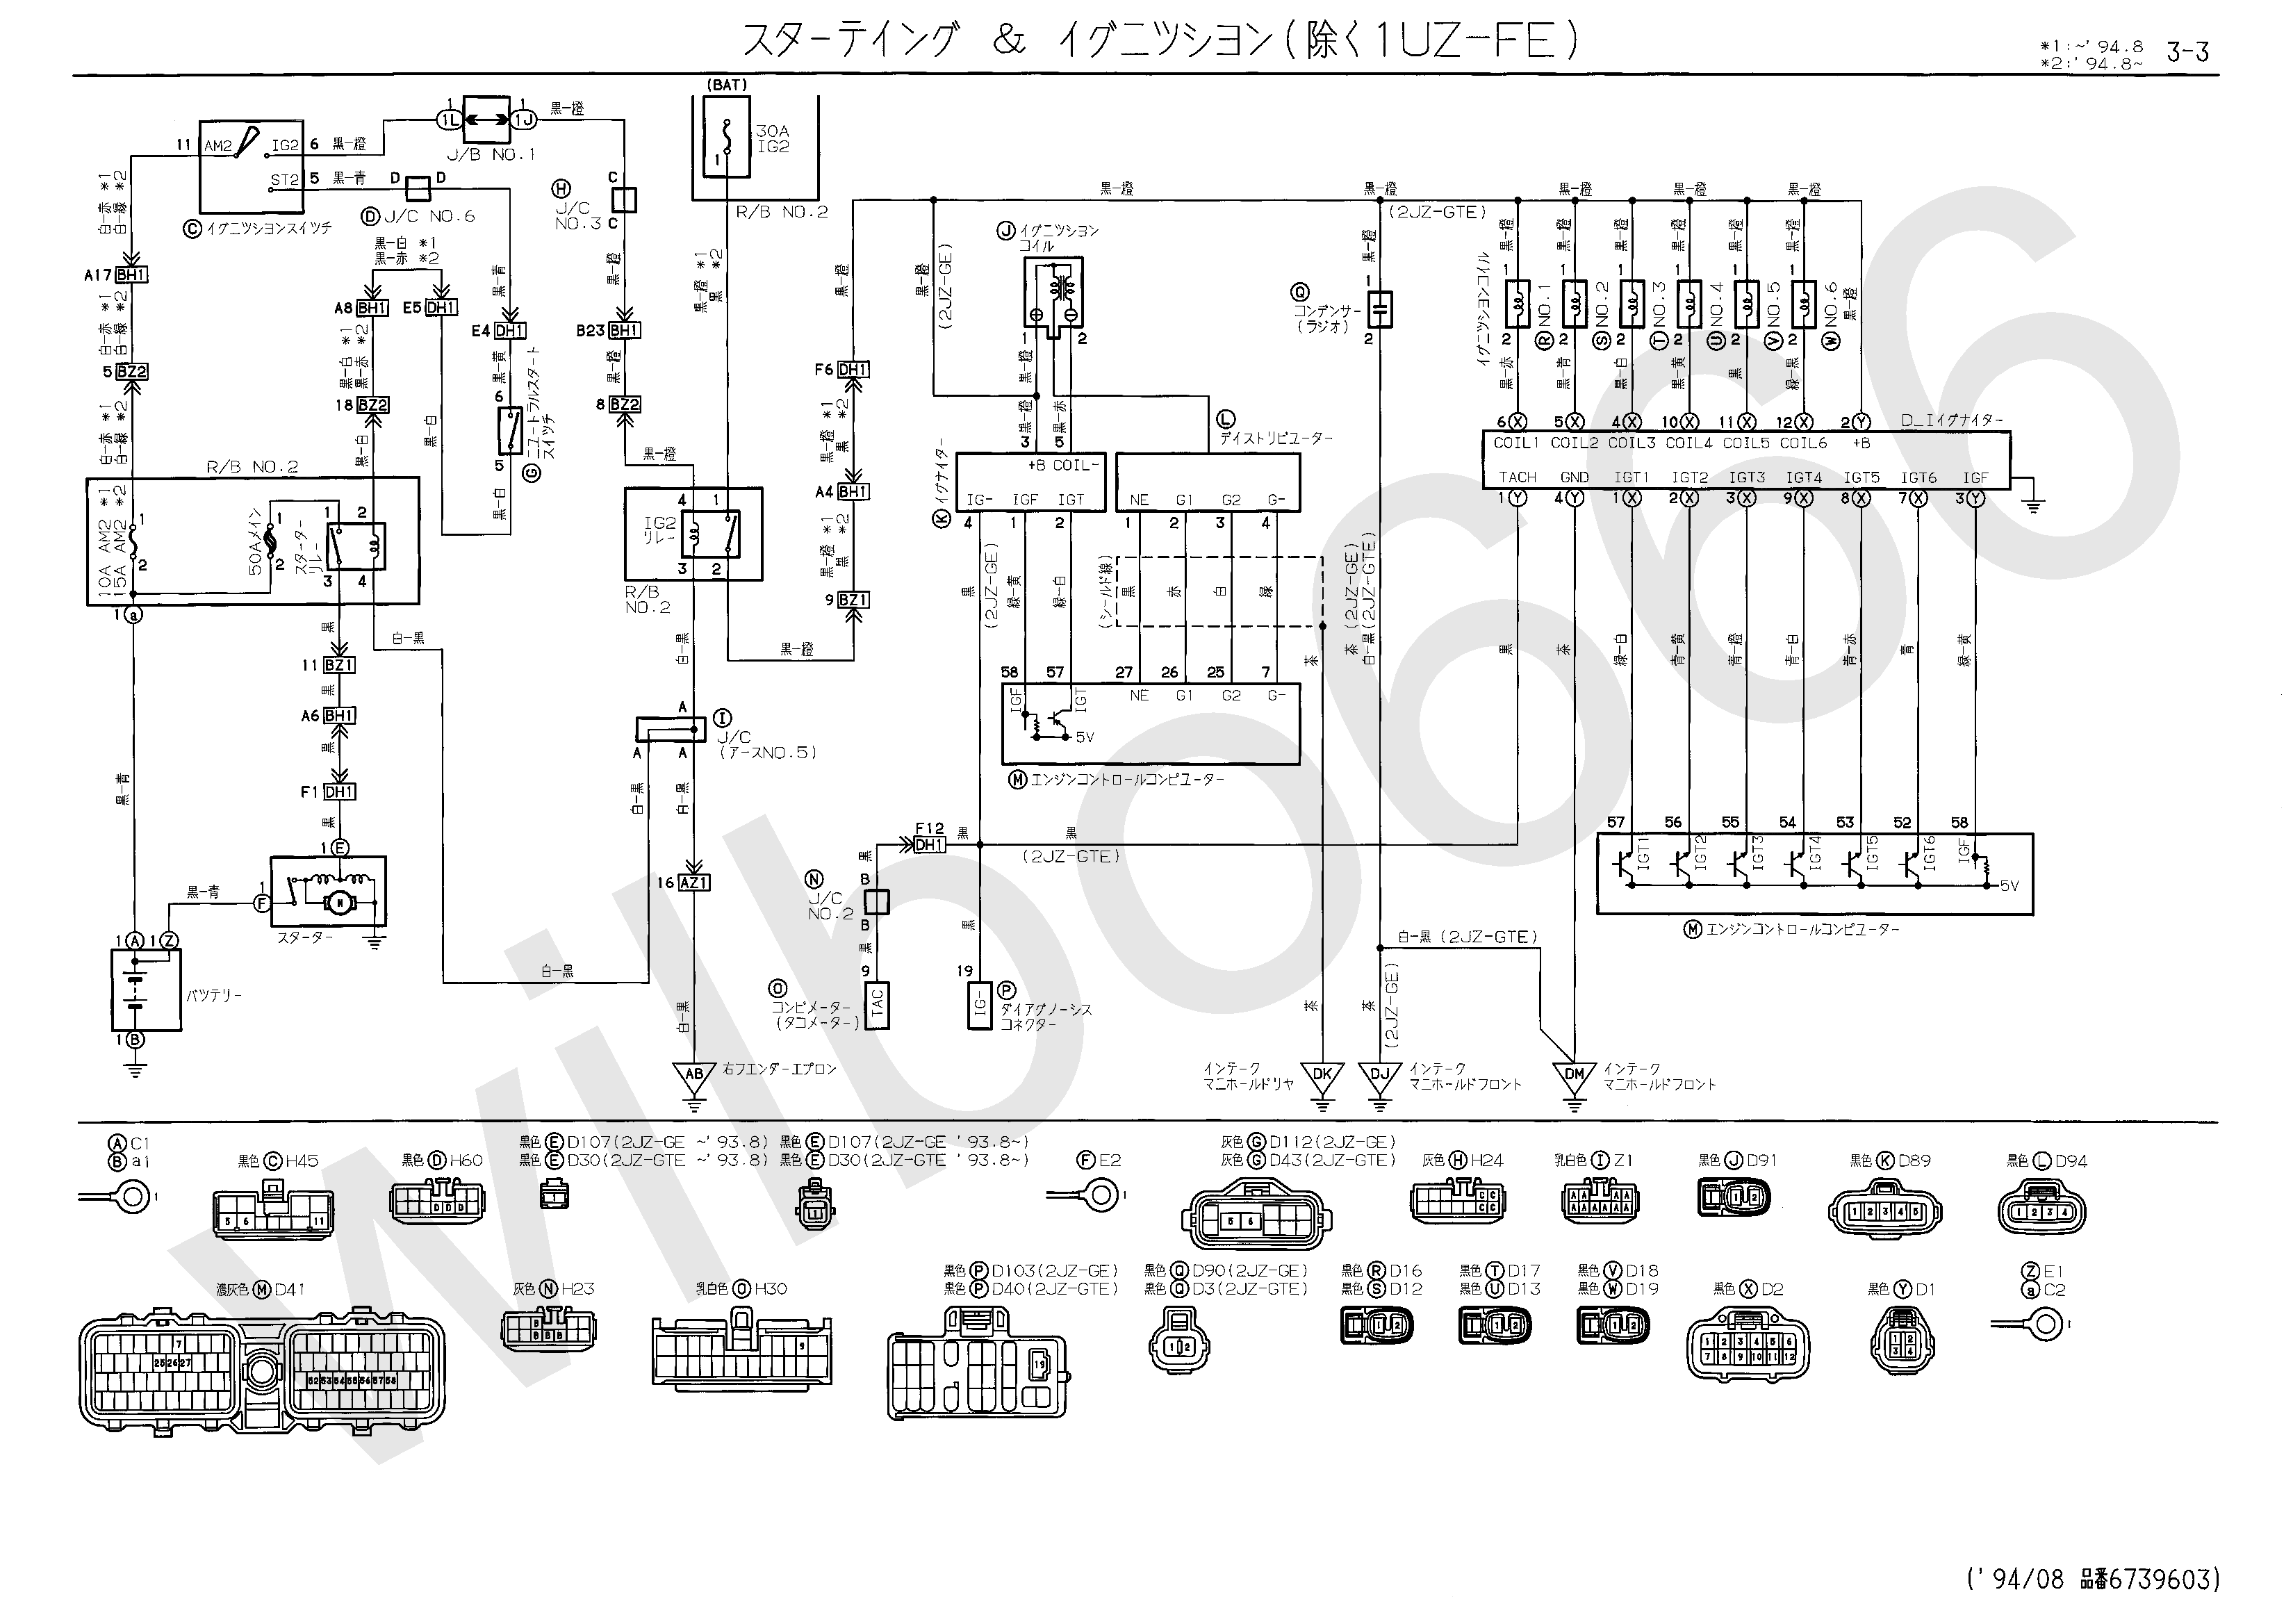 JZS14%23%2C UZS14%23 Electrical Wiring Diagram 6739604 3 3?resize\\\\\\\\\\\\\\\\\\\\\\\\\\\\\\\\\\\\\\\\\\\\\\\\\\\\\\\\\\\\\\\\\\\\\\\\\\\\\\\\\\\\\\\\\\\\\\\\\\\\\\\\\\\\\\\\\\\\\\\\\\\\\\\\\\\\\\\\\\\\\\\\\\\\\\\\\\\\\\\\\\\\\\\\\\\\\\\\\\\\\\\\\\\\\\\\\\\\\\\\\\\\\\\\\\\\\\\\\\\\\\\\\\\\\\\\\\\\\\\\\\\\\\\\\\\\\\\\\\\\\\\\\\\\\\\\\\\\\\\\\\\\\\\\\\\\\\\\\\\\\\\\\\\\\\\\\\\\\\\\\\\\\\\\\\\\\\\\\\\\\\\\\\\\\\\\\\\\\\\\\\\\\\\\\\\\\\\\\\\\\\\\\\\\\\\\\\\\\\\\\\\\\\\\\\\\\\\\\\\\\\\\\\\\\\\\\\\\\\\\\\\\\\\\\\\\\\\\\\\\\\\\\\\\\\\\\\\\\\\\\\\\\\\\\\\\\\\\\\\\\\\\\\\\\\\\\\\\\\\\\\\\\\\\\\\\\\\\\\\\\\\\\\\\\\\\\\\\\\\\\\\\\\\\\\\\\\\\\\\\\\\\\\\\\\\\\\\\\\\\\\\\\\\\\\\\\\\\\\\\\\\\\\\\\\\\\\\\\\\\\\\\\\\\\\\\\\\\\\\\\\\\\\\\\\\\\\\\\\\\\\\\\\\\\\\\\\\\\\\\\\\\\\\\\\\\\\\\\\\\\\\\\\\\\\\\\\\\\\\\\\\\\\\\\\\\\\\\\\\\\\\\\\\\\\\\\\\\\\\\\\\\\\\\\\\\\\\\\\\\\\\\\\\\\\\\\\\\\\\\\\\\\\\\\\\\\\\\\\\\\\\\\\\\\\\\\\\\\\\\\\\\\\\\\\\\\\\\\\\\\\\\\\\\\\\\\\\\\\\\\\\\\\\\\\\\\\\\\\\\\\\\\\\=665%2C471 astounding hofner bass wiring diagram gallery wiring schematic Schecter Diamond Series Wiring Diagram at panicattacktreatment.co